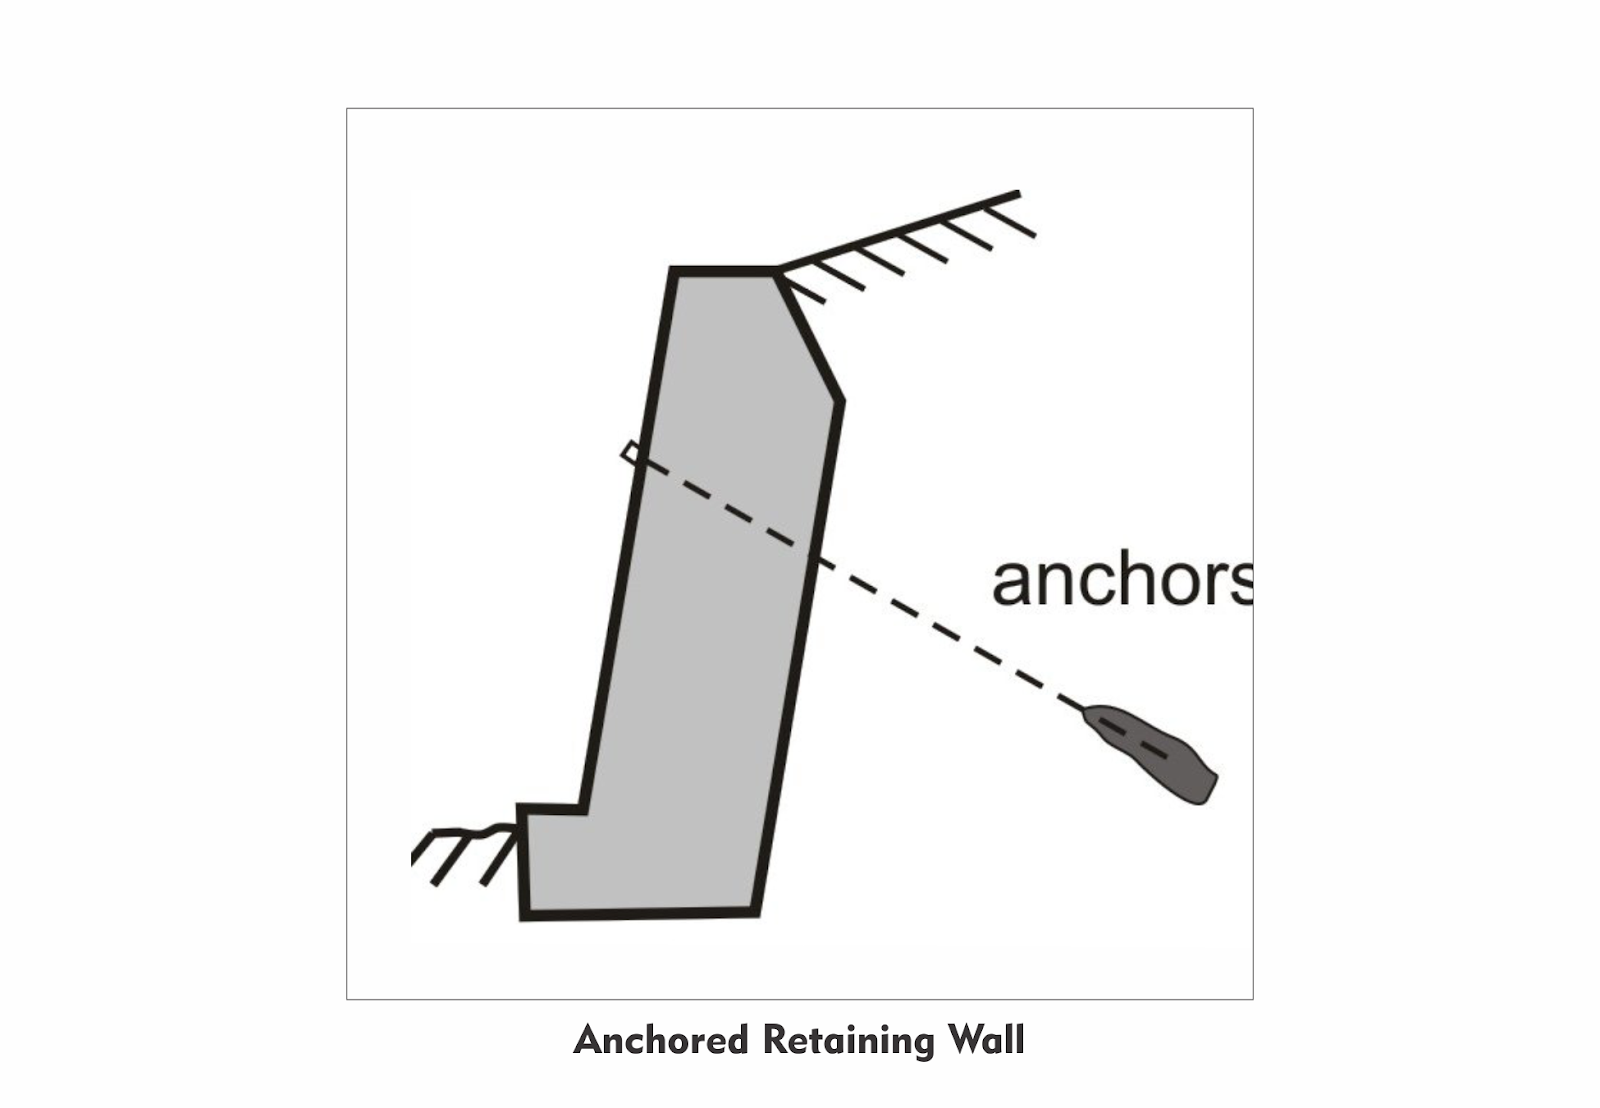 Anchored Retaining Wall